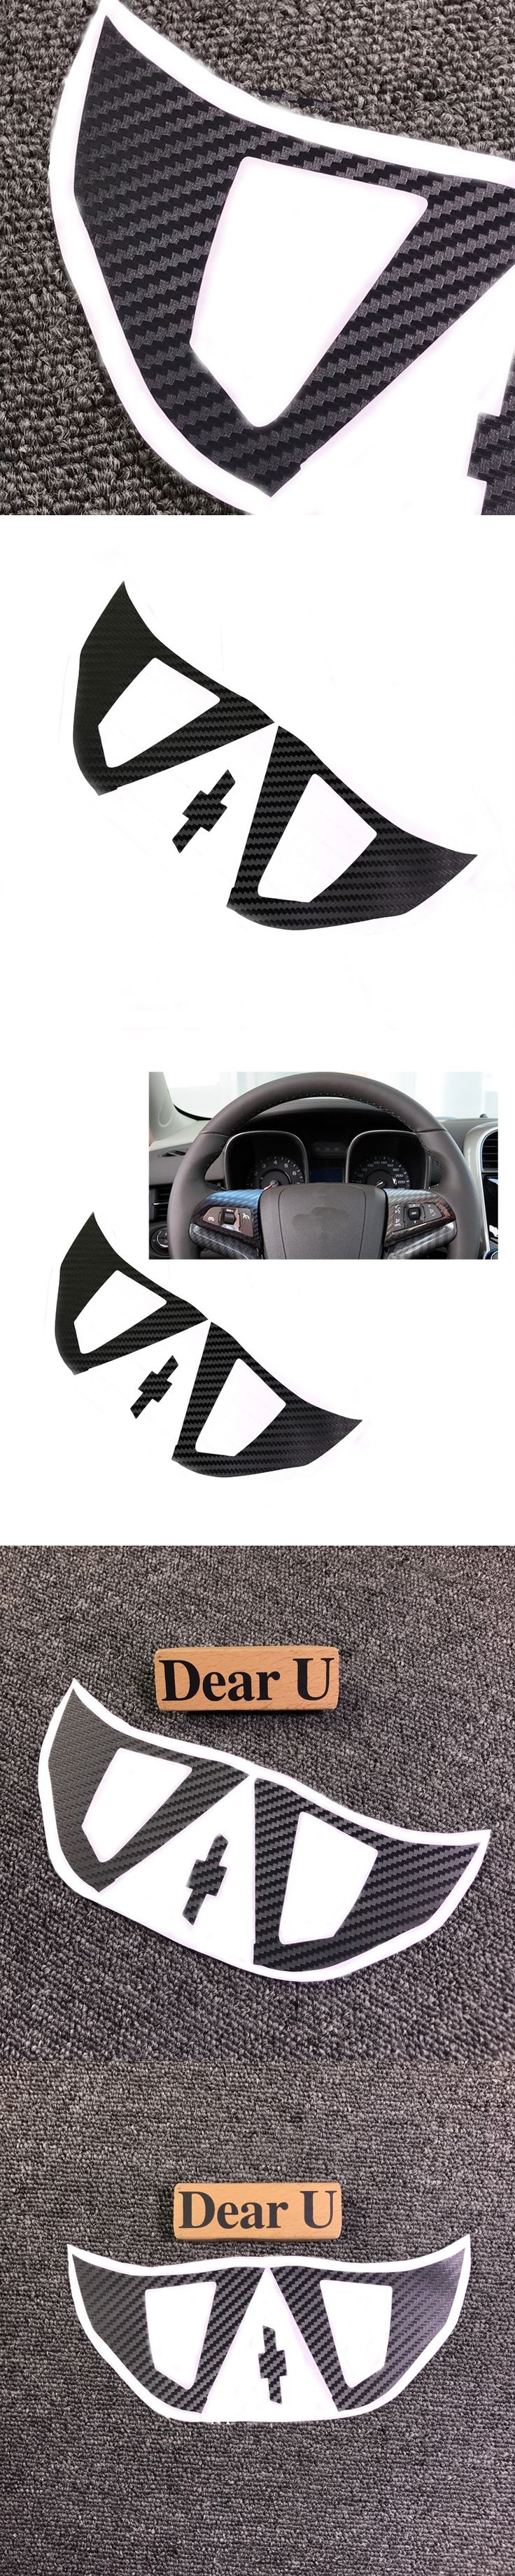 JEAZEA Car Styling 2Pcs Carbon Fiber Steering Wheel Protective Cover Sticker For Chevrolet Holden Malibu 2012 2013 2014